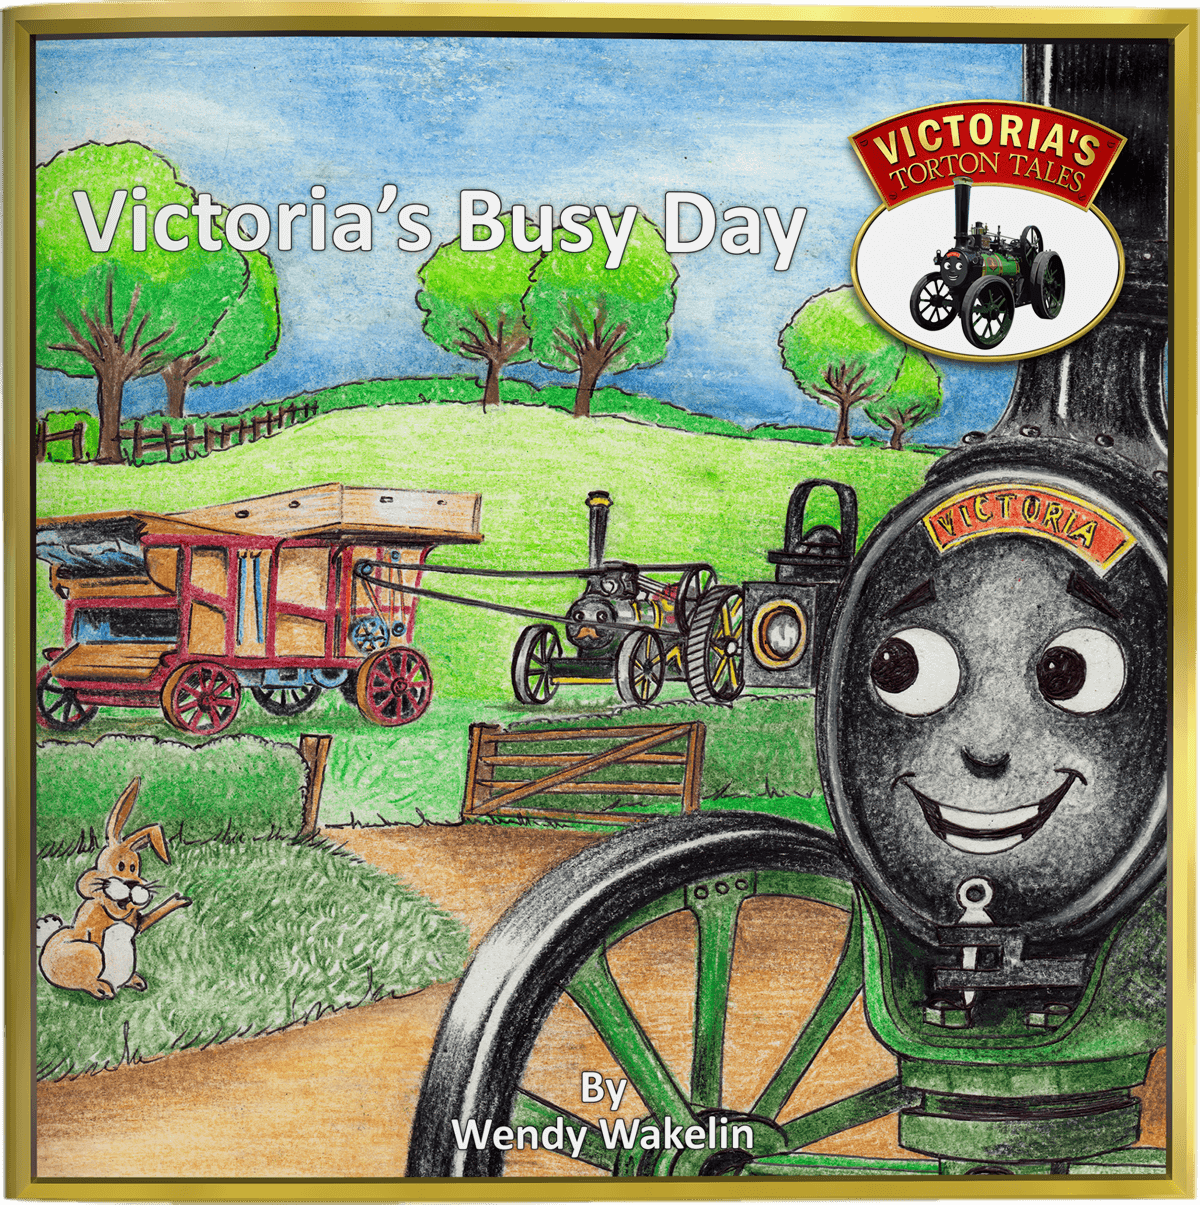 Cover of Victoria's Busy Day from Victoria's Torton Tales children's storybooks